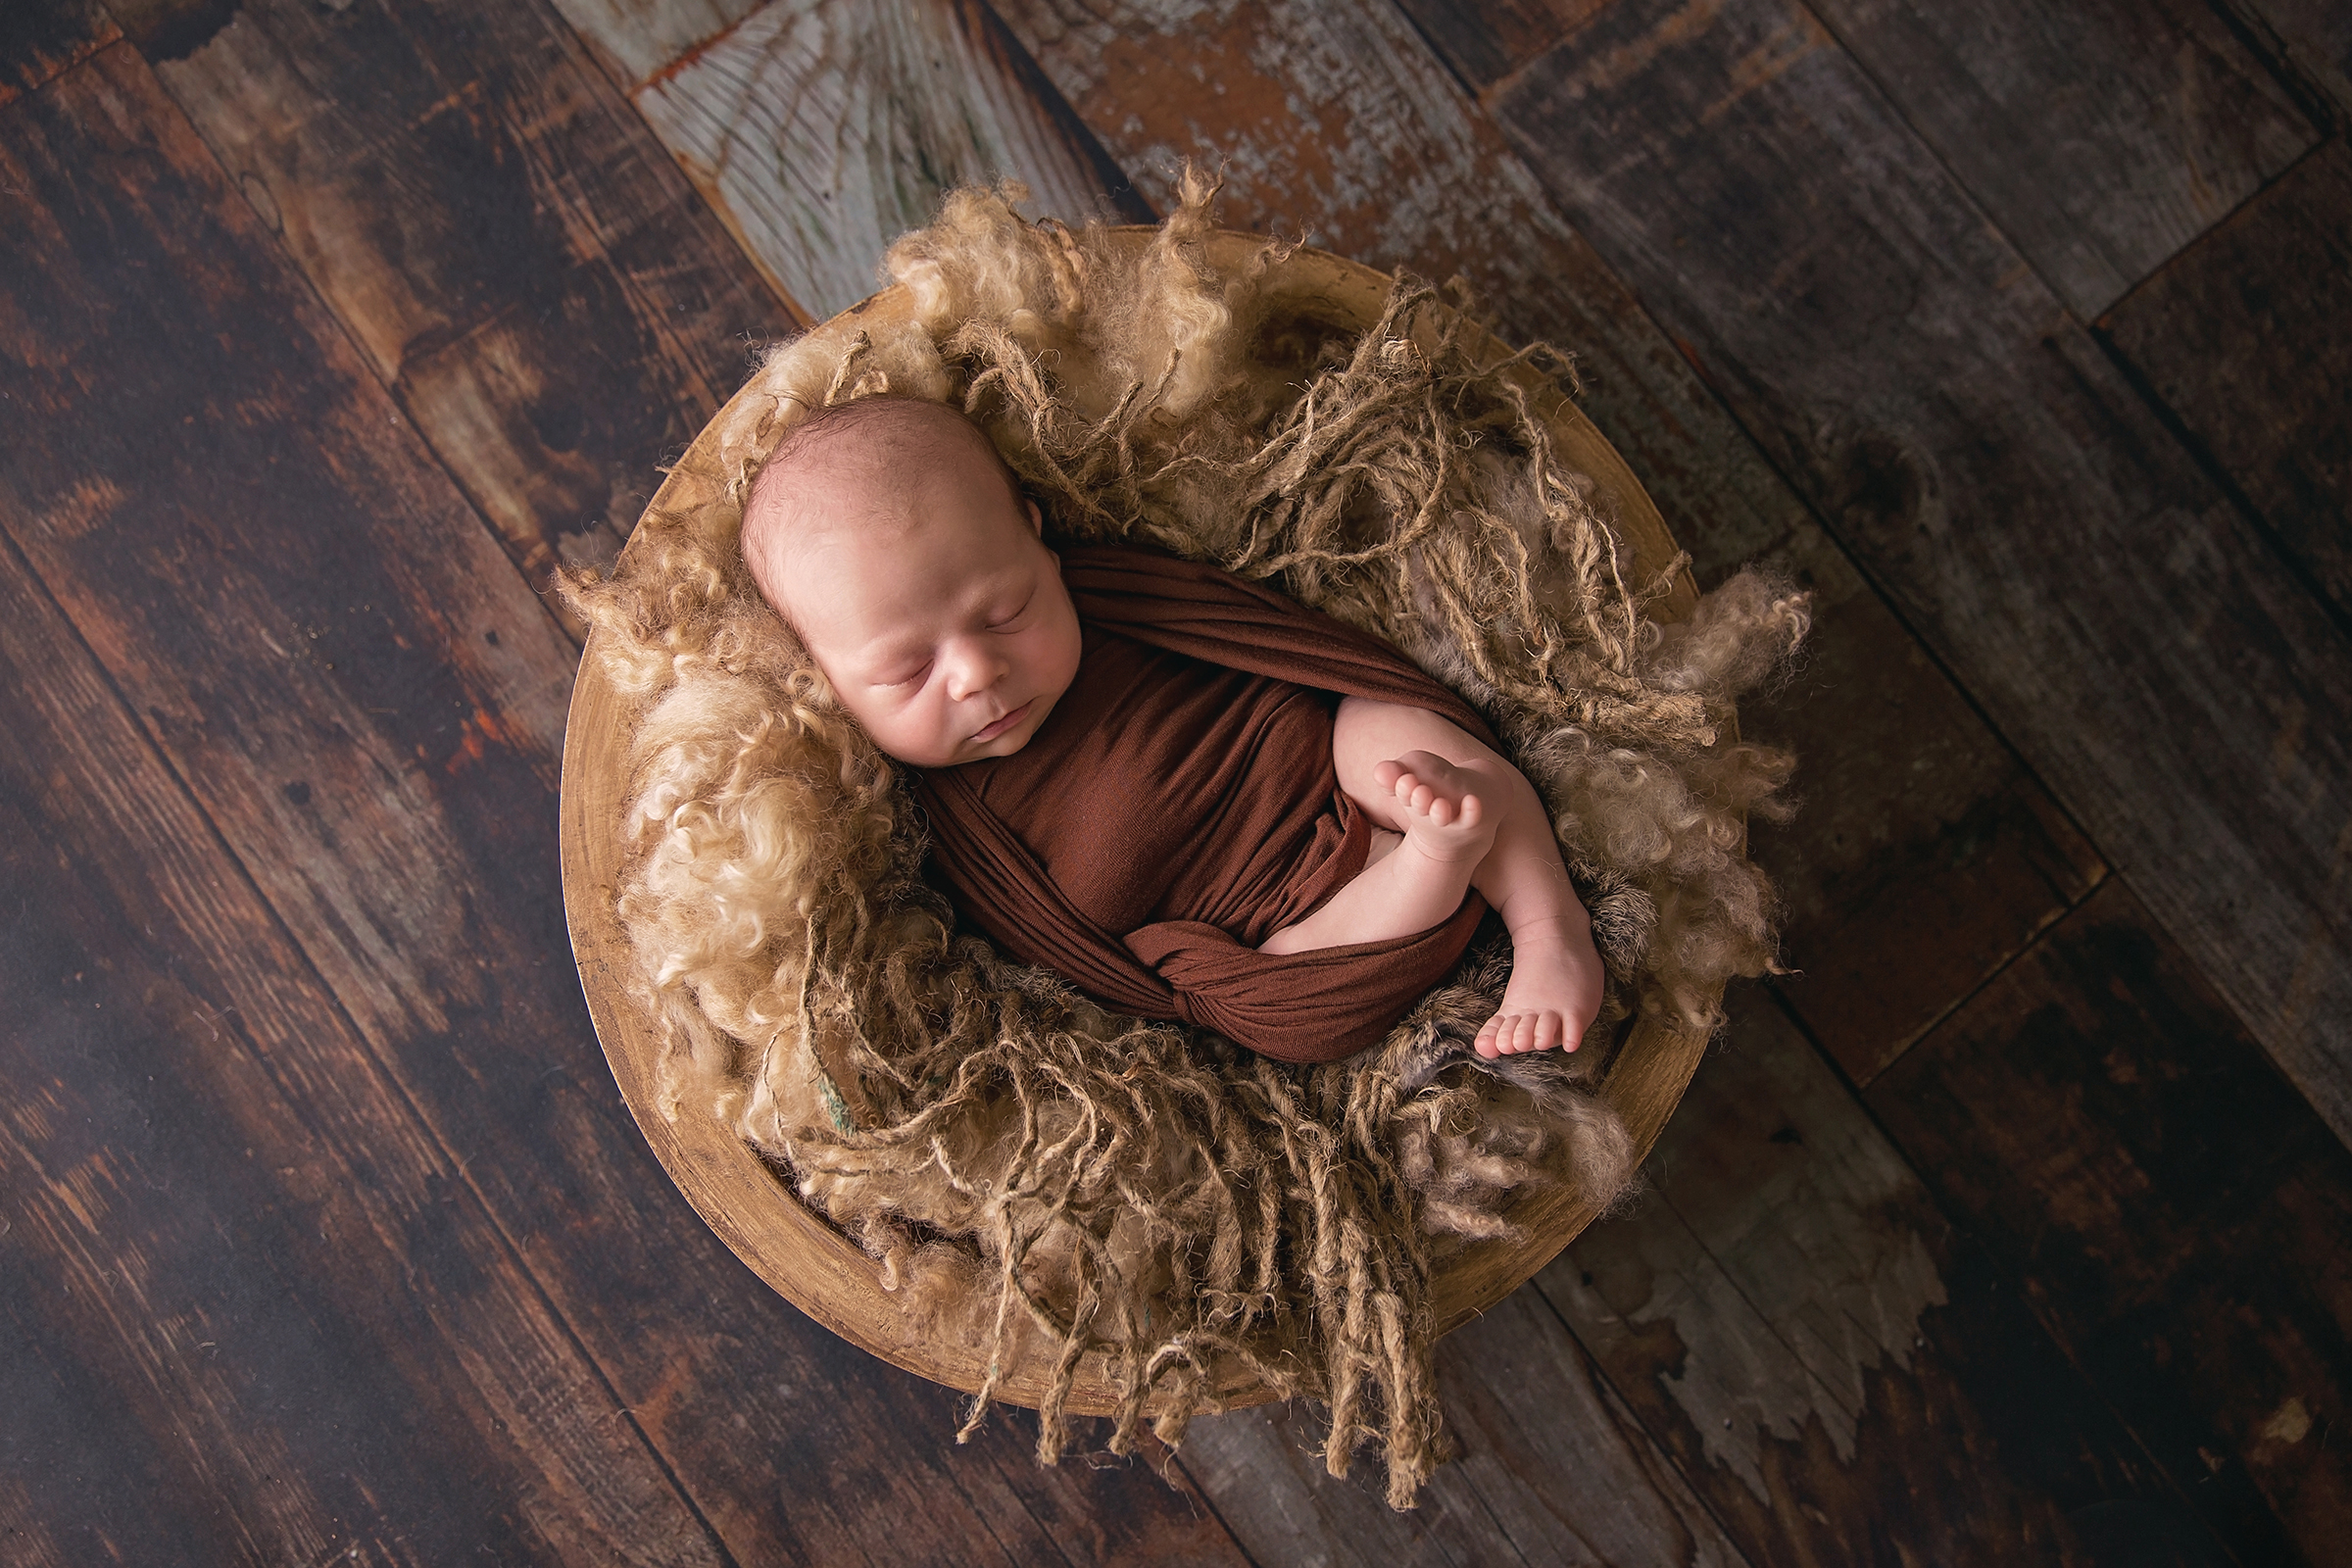 Caleb-3weeks-10edit.jpg